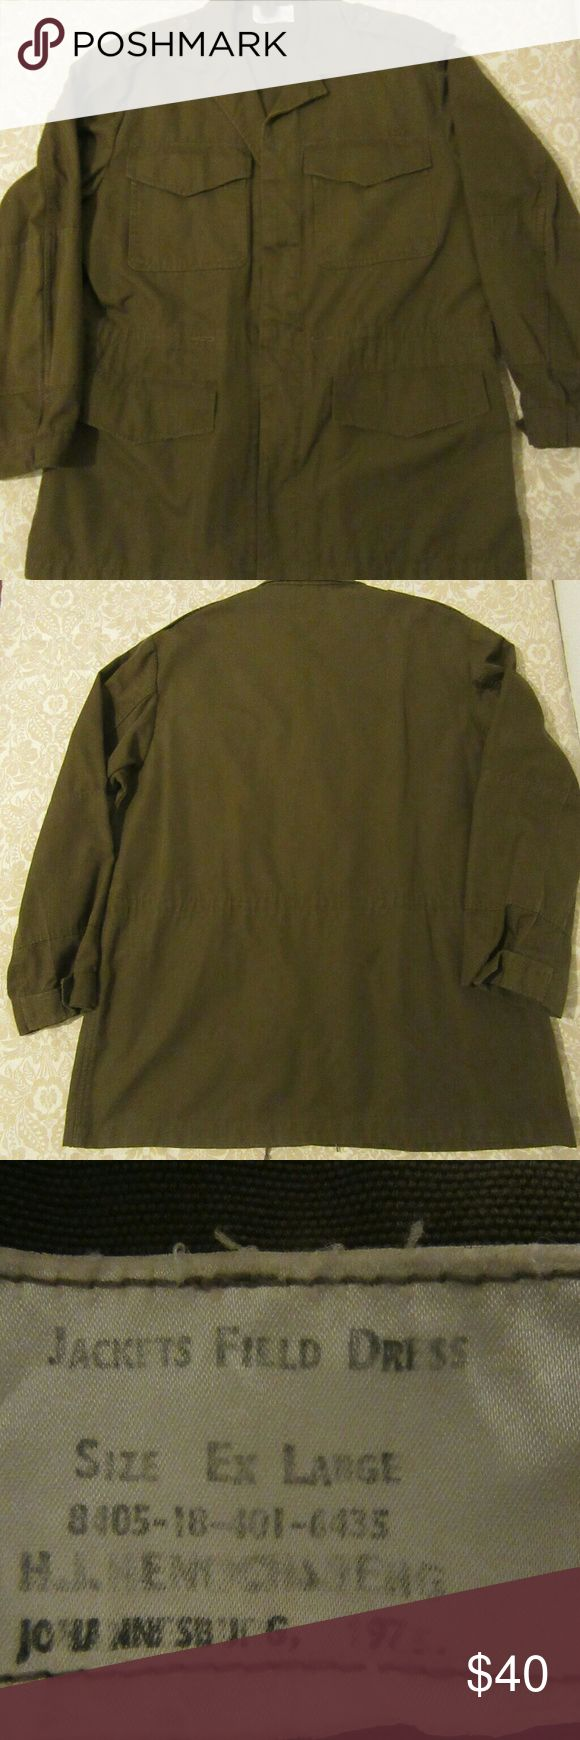 vintage rare vietnam era 75 military field jacket excellent shape  vintage rare vietnam era 1975 military field jacket sz XL  has officers enlisted name   pit to pit 26  shoulder to cuff 24.5  shoulder to shoulder 20  top to bottom 33 military Jackets & Coats Military & Field